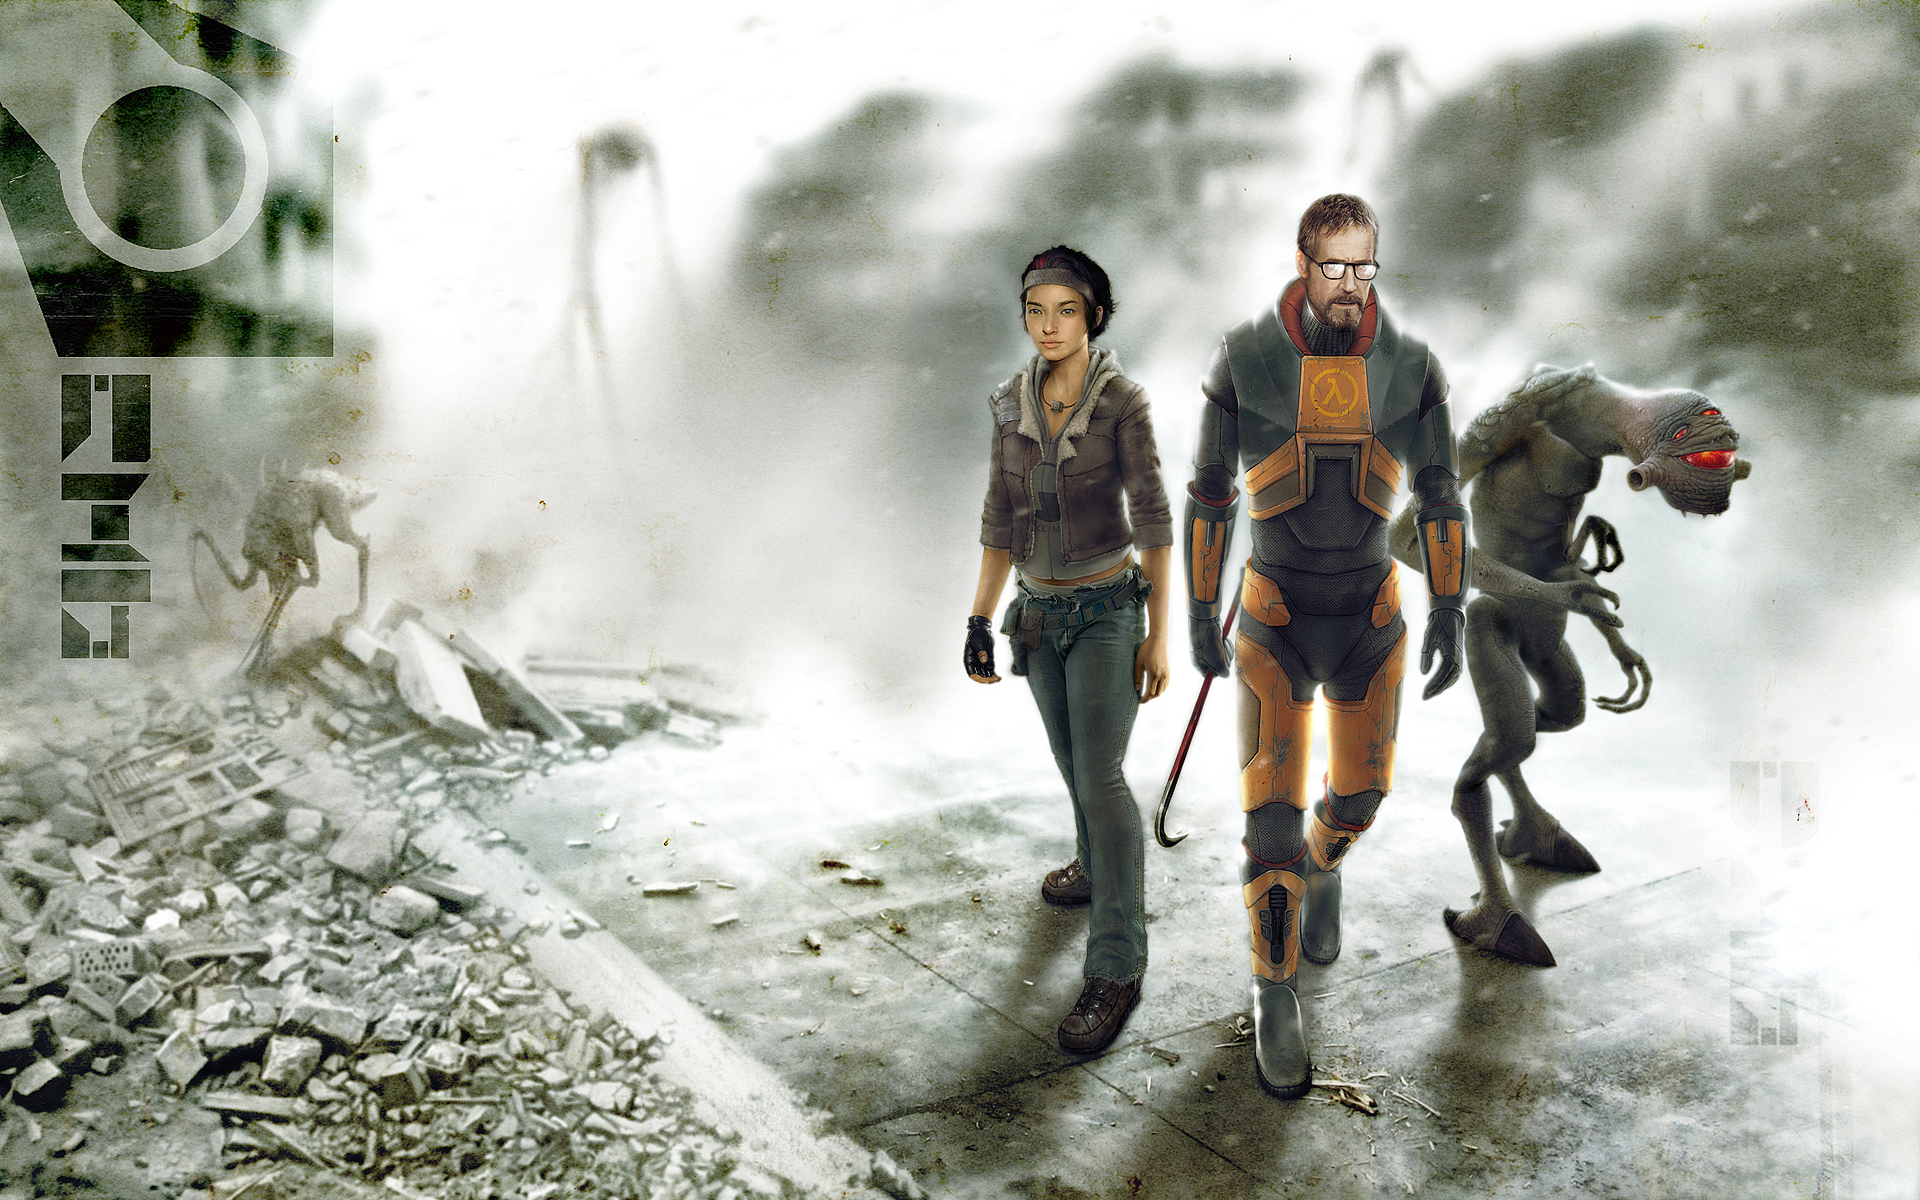 Half-Life 2 Wallpapers High Quality | Download Free